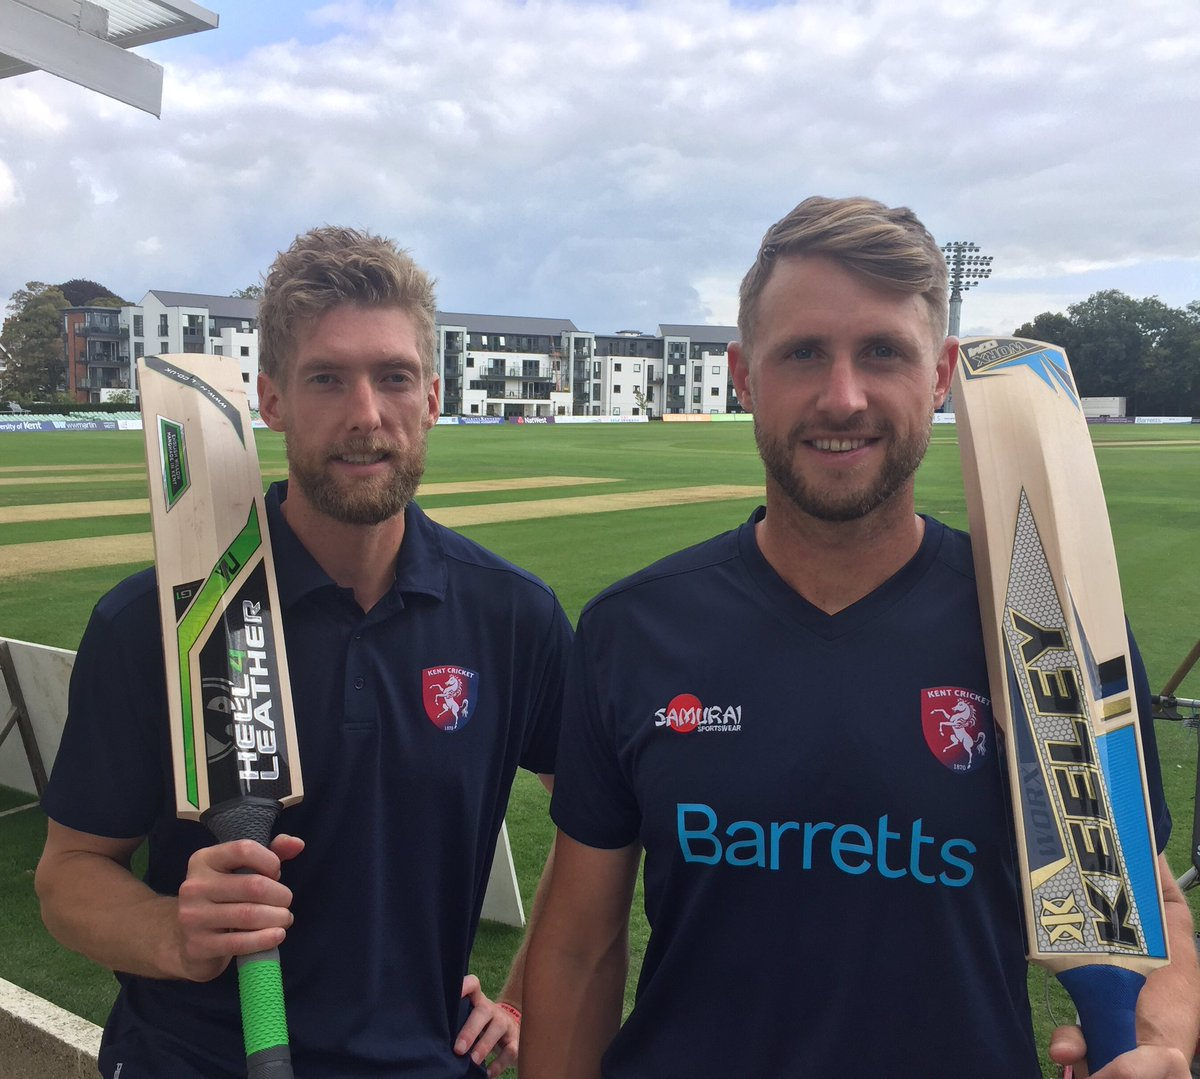 4e4fe33dfa6 ... new range of replica training gear that is now available in the club  shop or online at http://www.kentcricket.co.uk/tickets-and-shop/  …pic.twitter.com/ ...